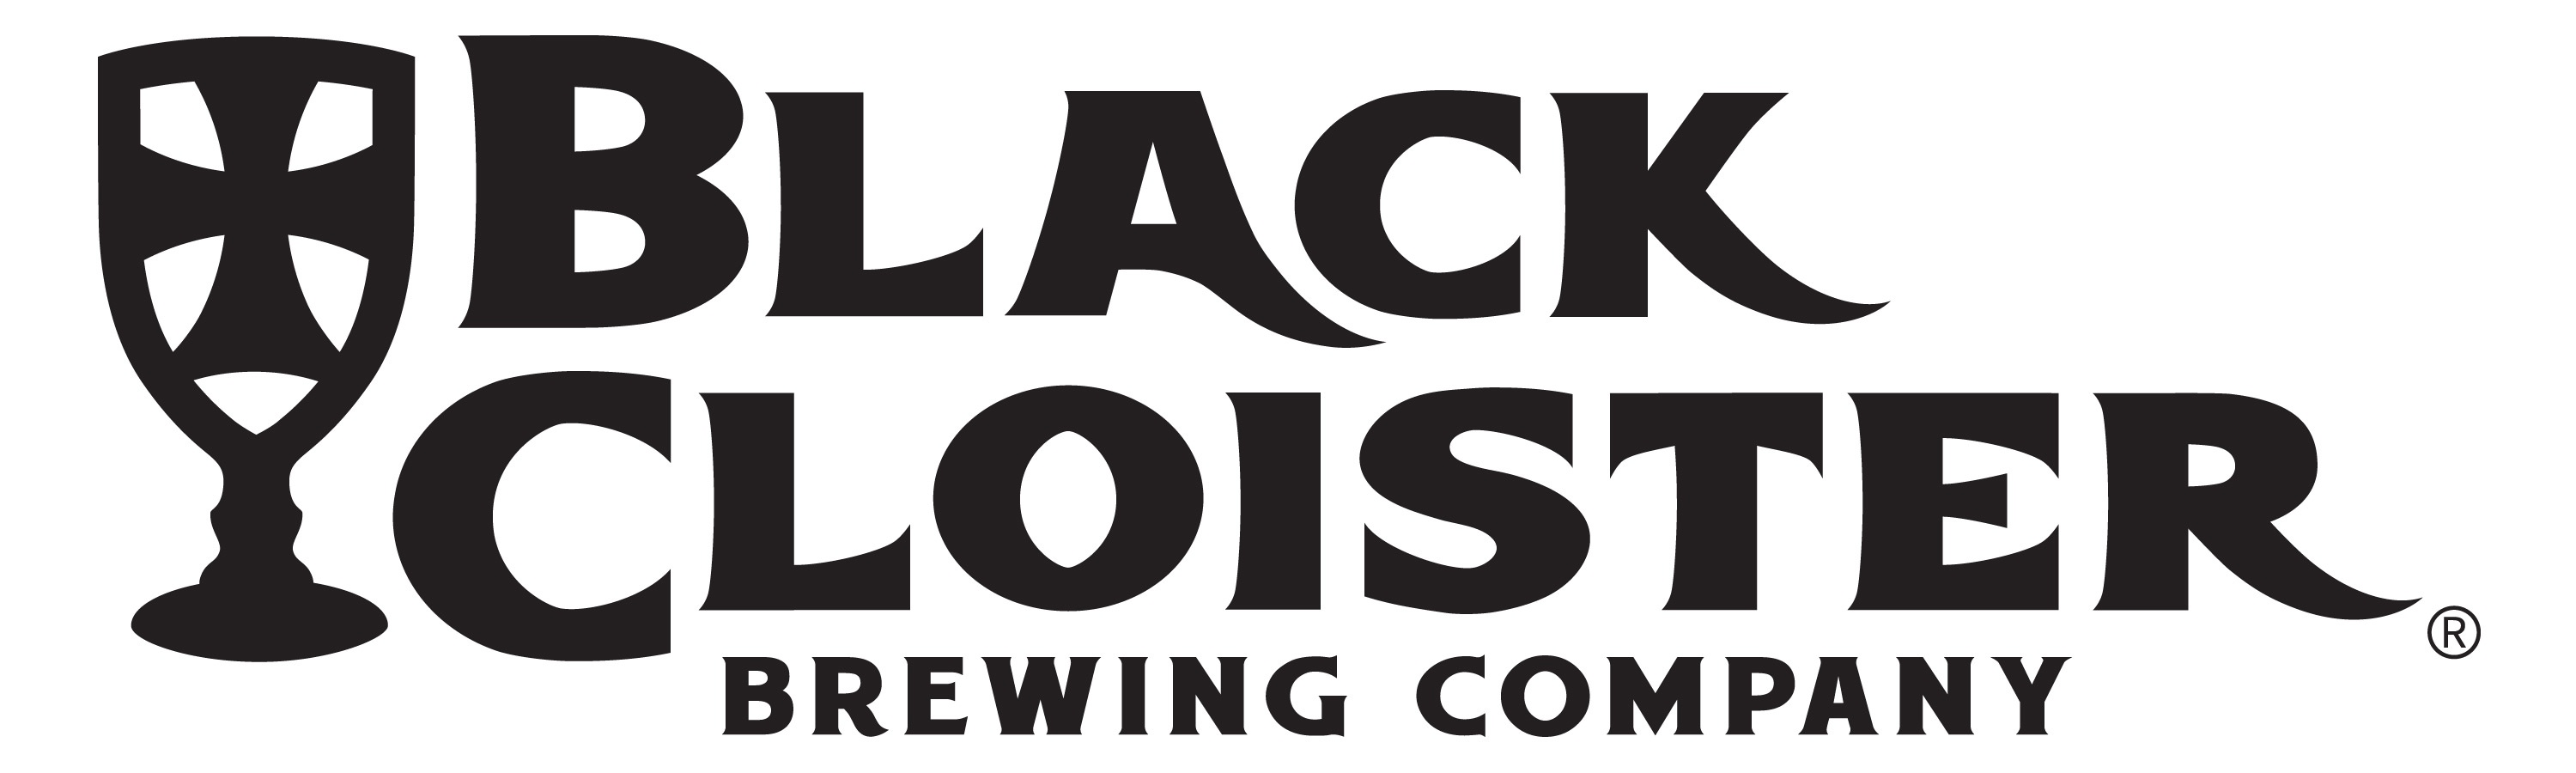 Black Cloister Brewing Company Brewery Tours   Explore The State: Brewery Tours in Ohio